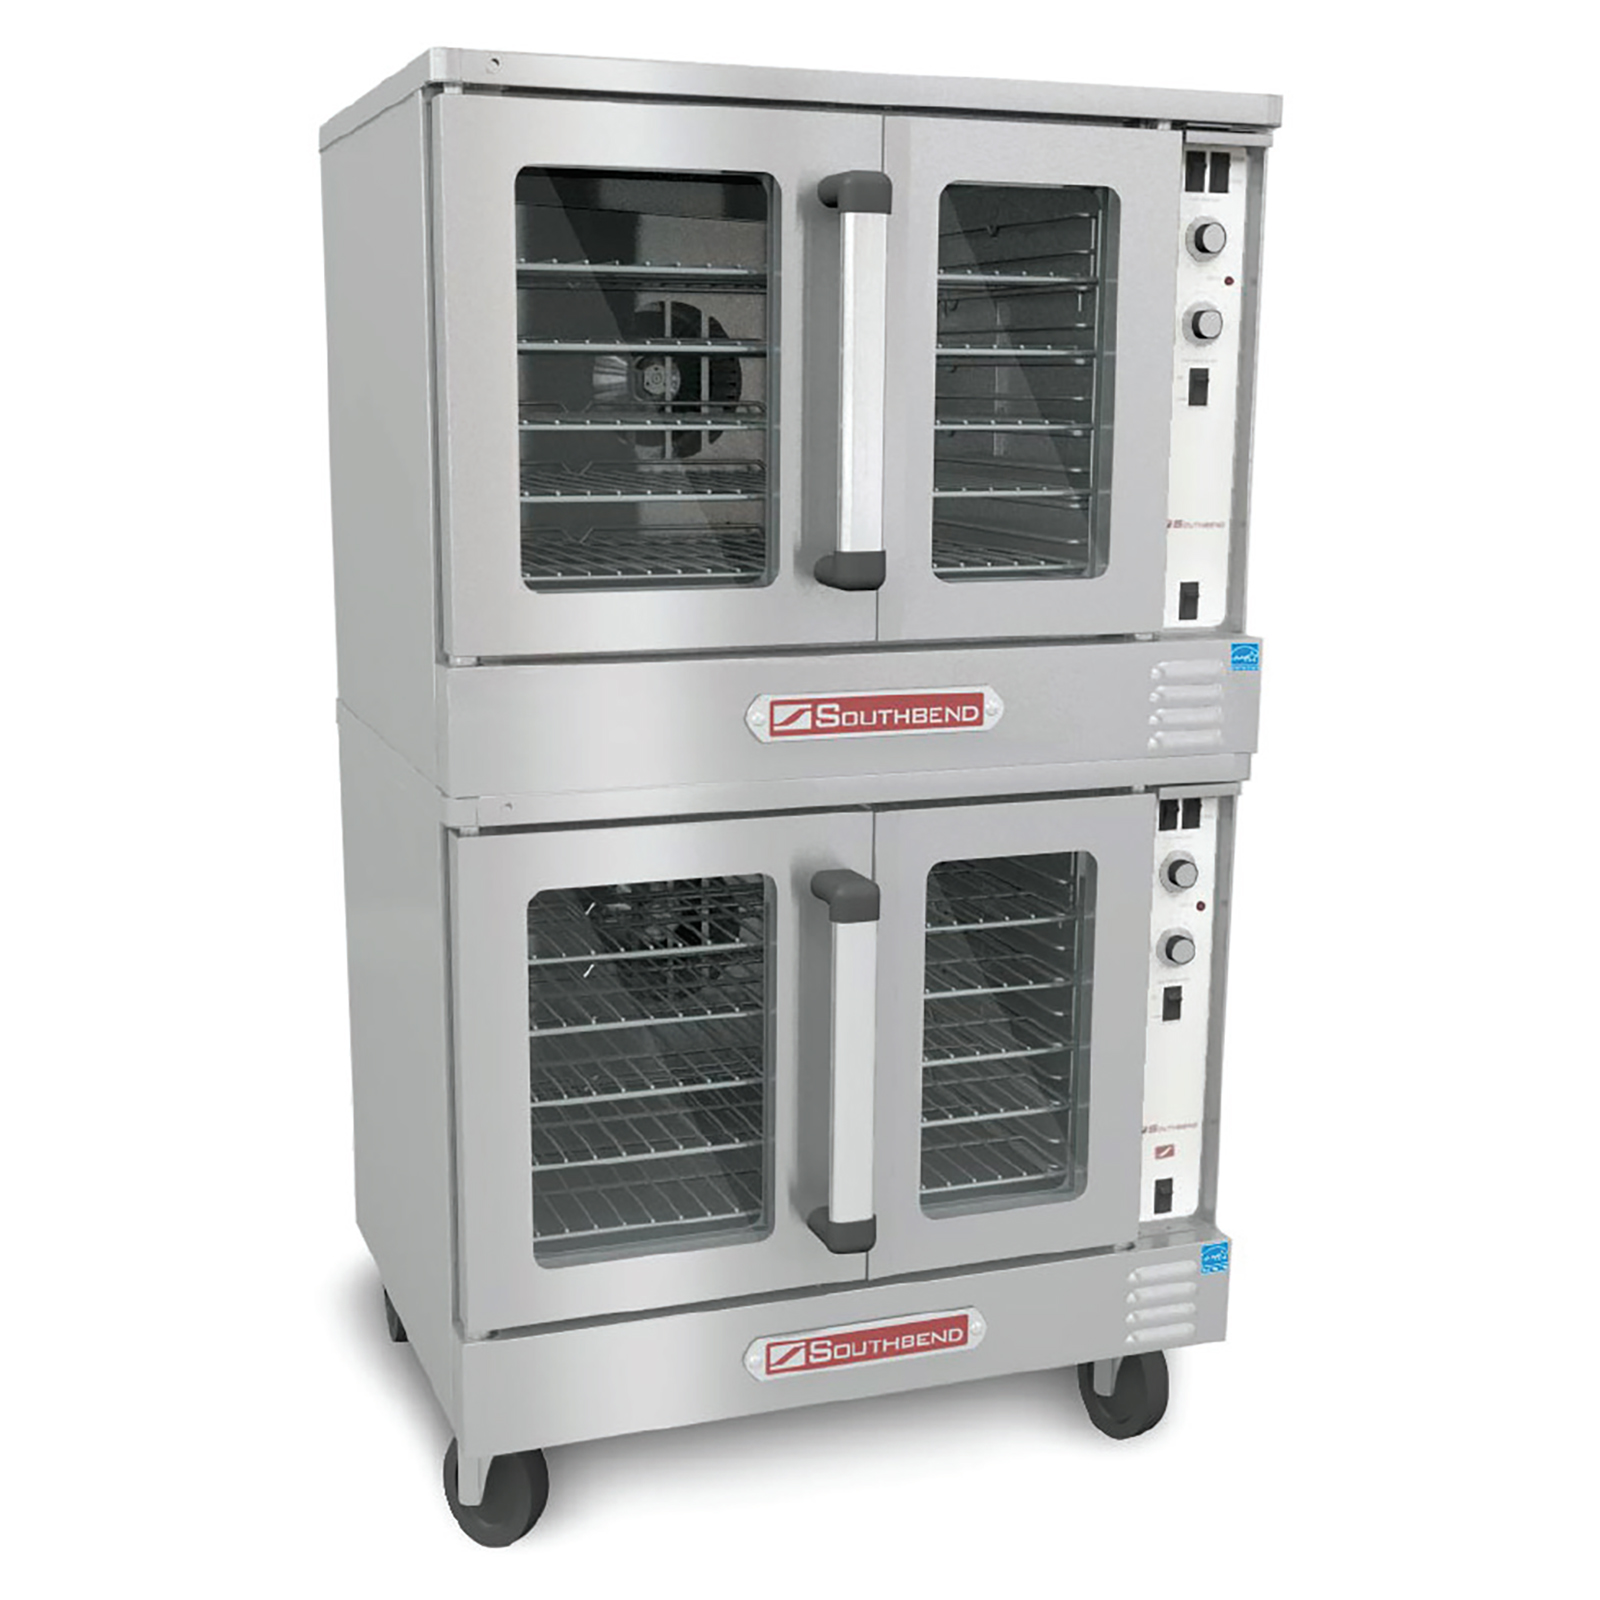 Southbend KLGS/27CCH convection oven, gas